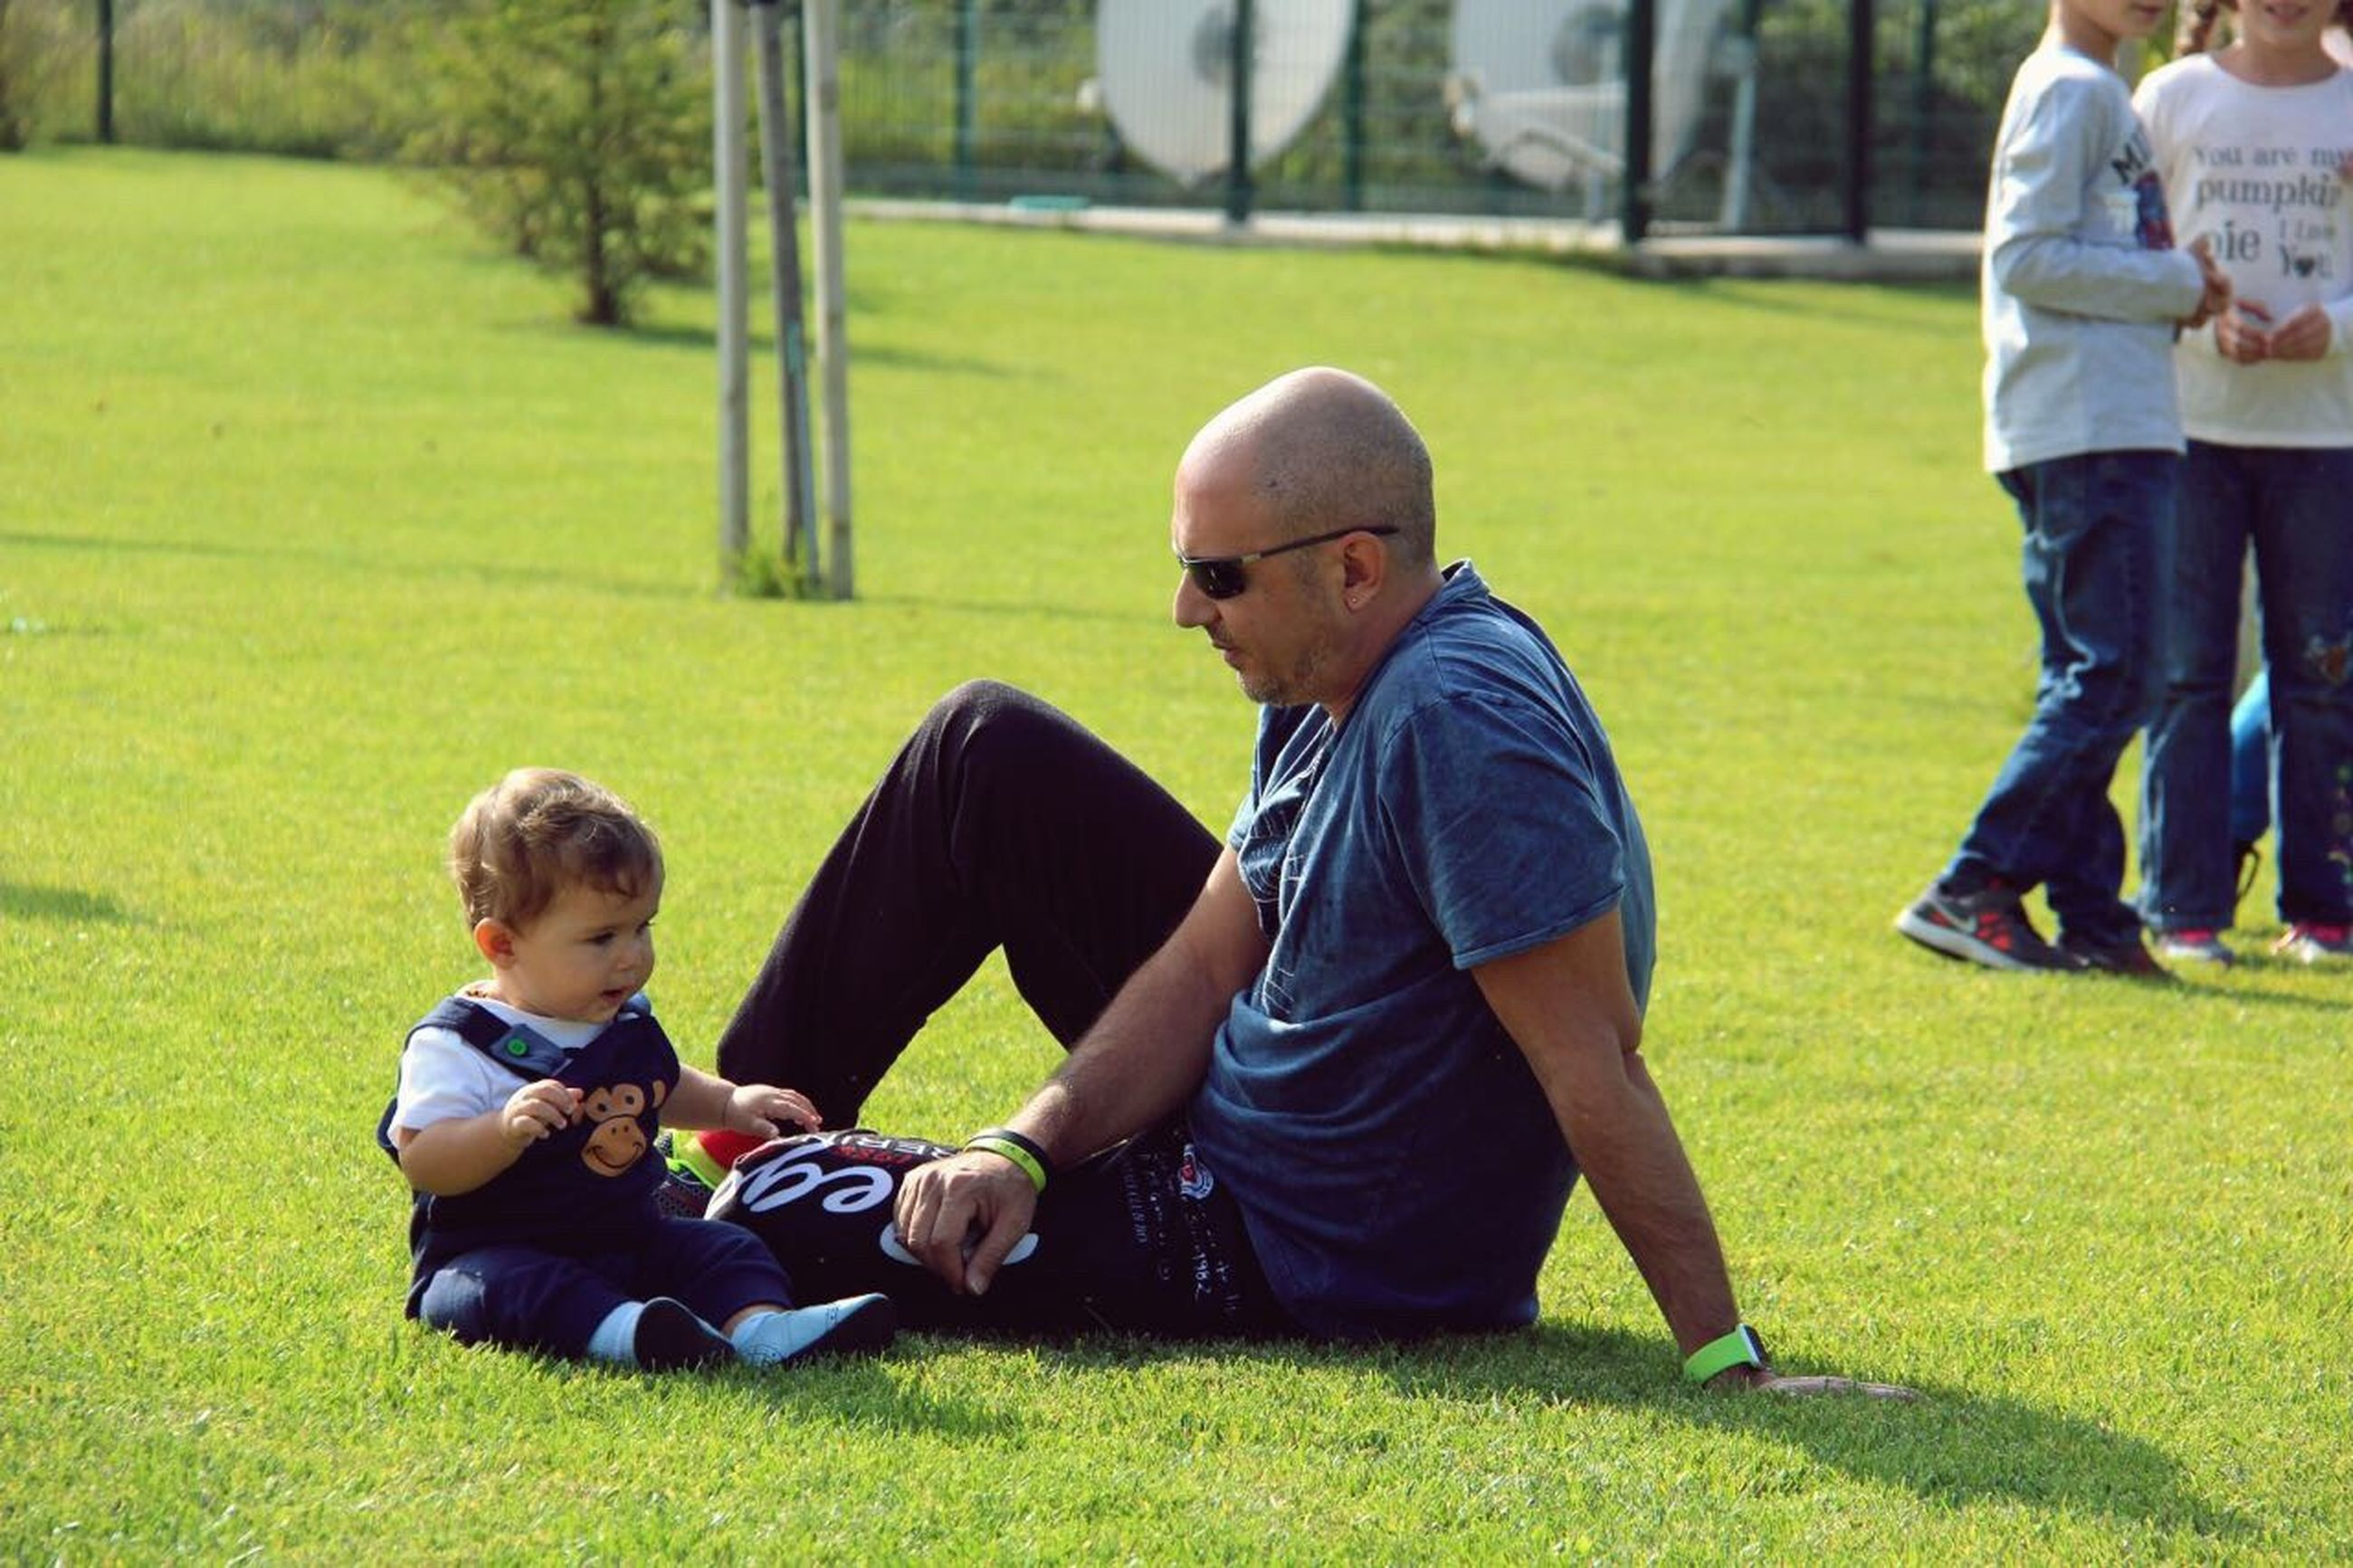 child, leisure activity, sitting, people, sport, outdoors, grass, soccer, bonding, day, togetherness, adult, childhood, playing, soccer field, sportsman, ball, athlete, young adult, track and field stadium, golfer